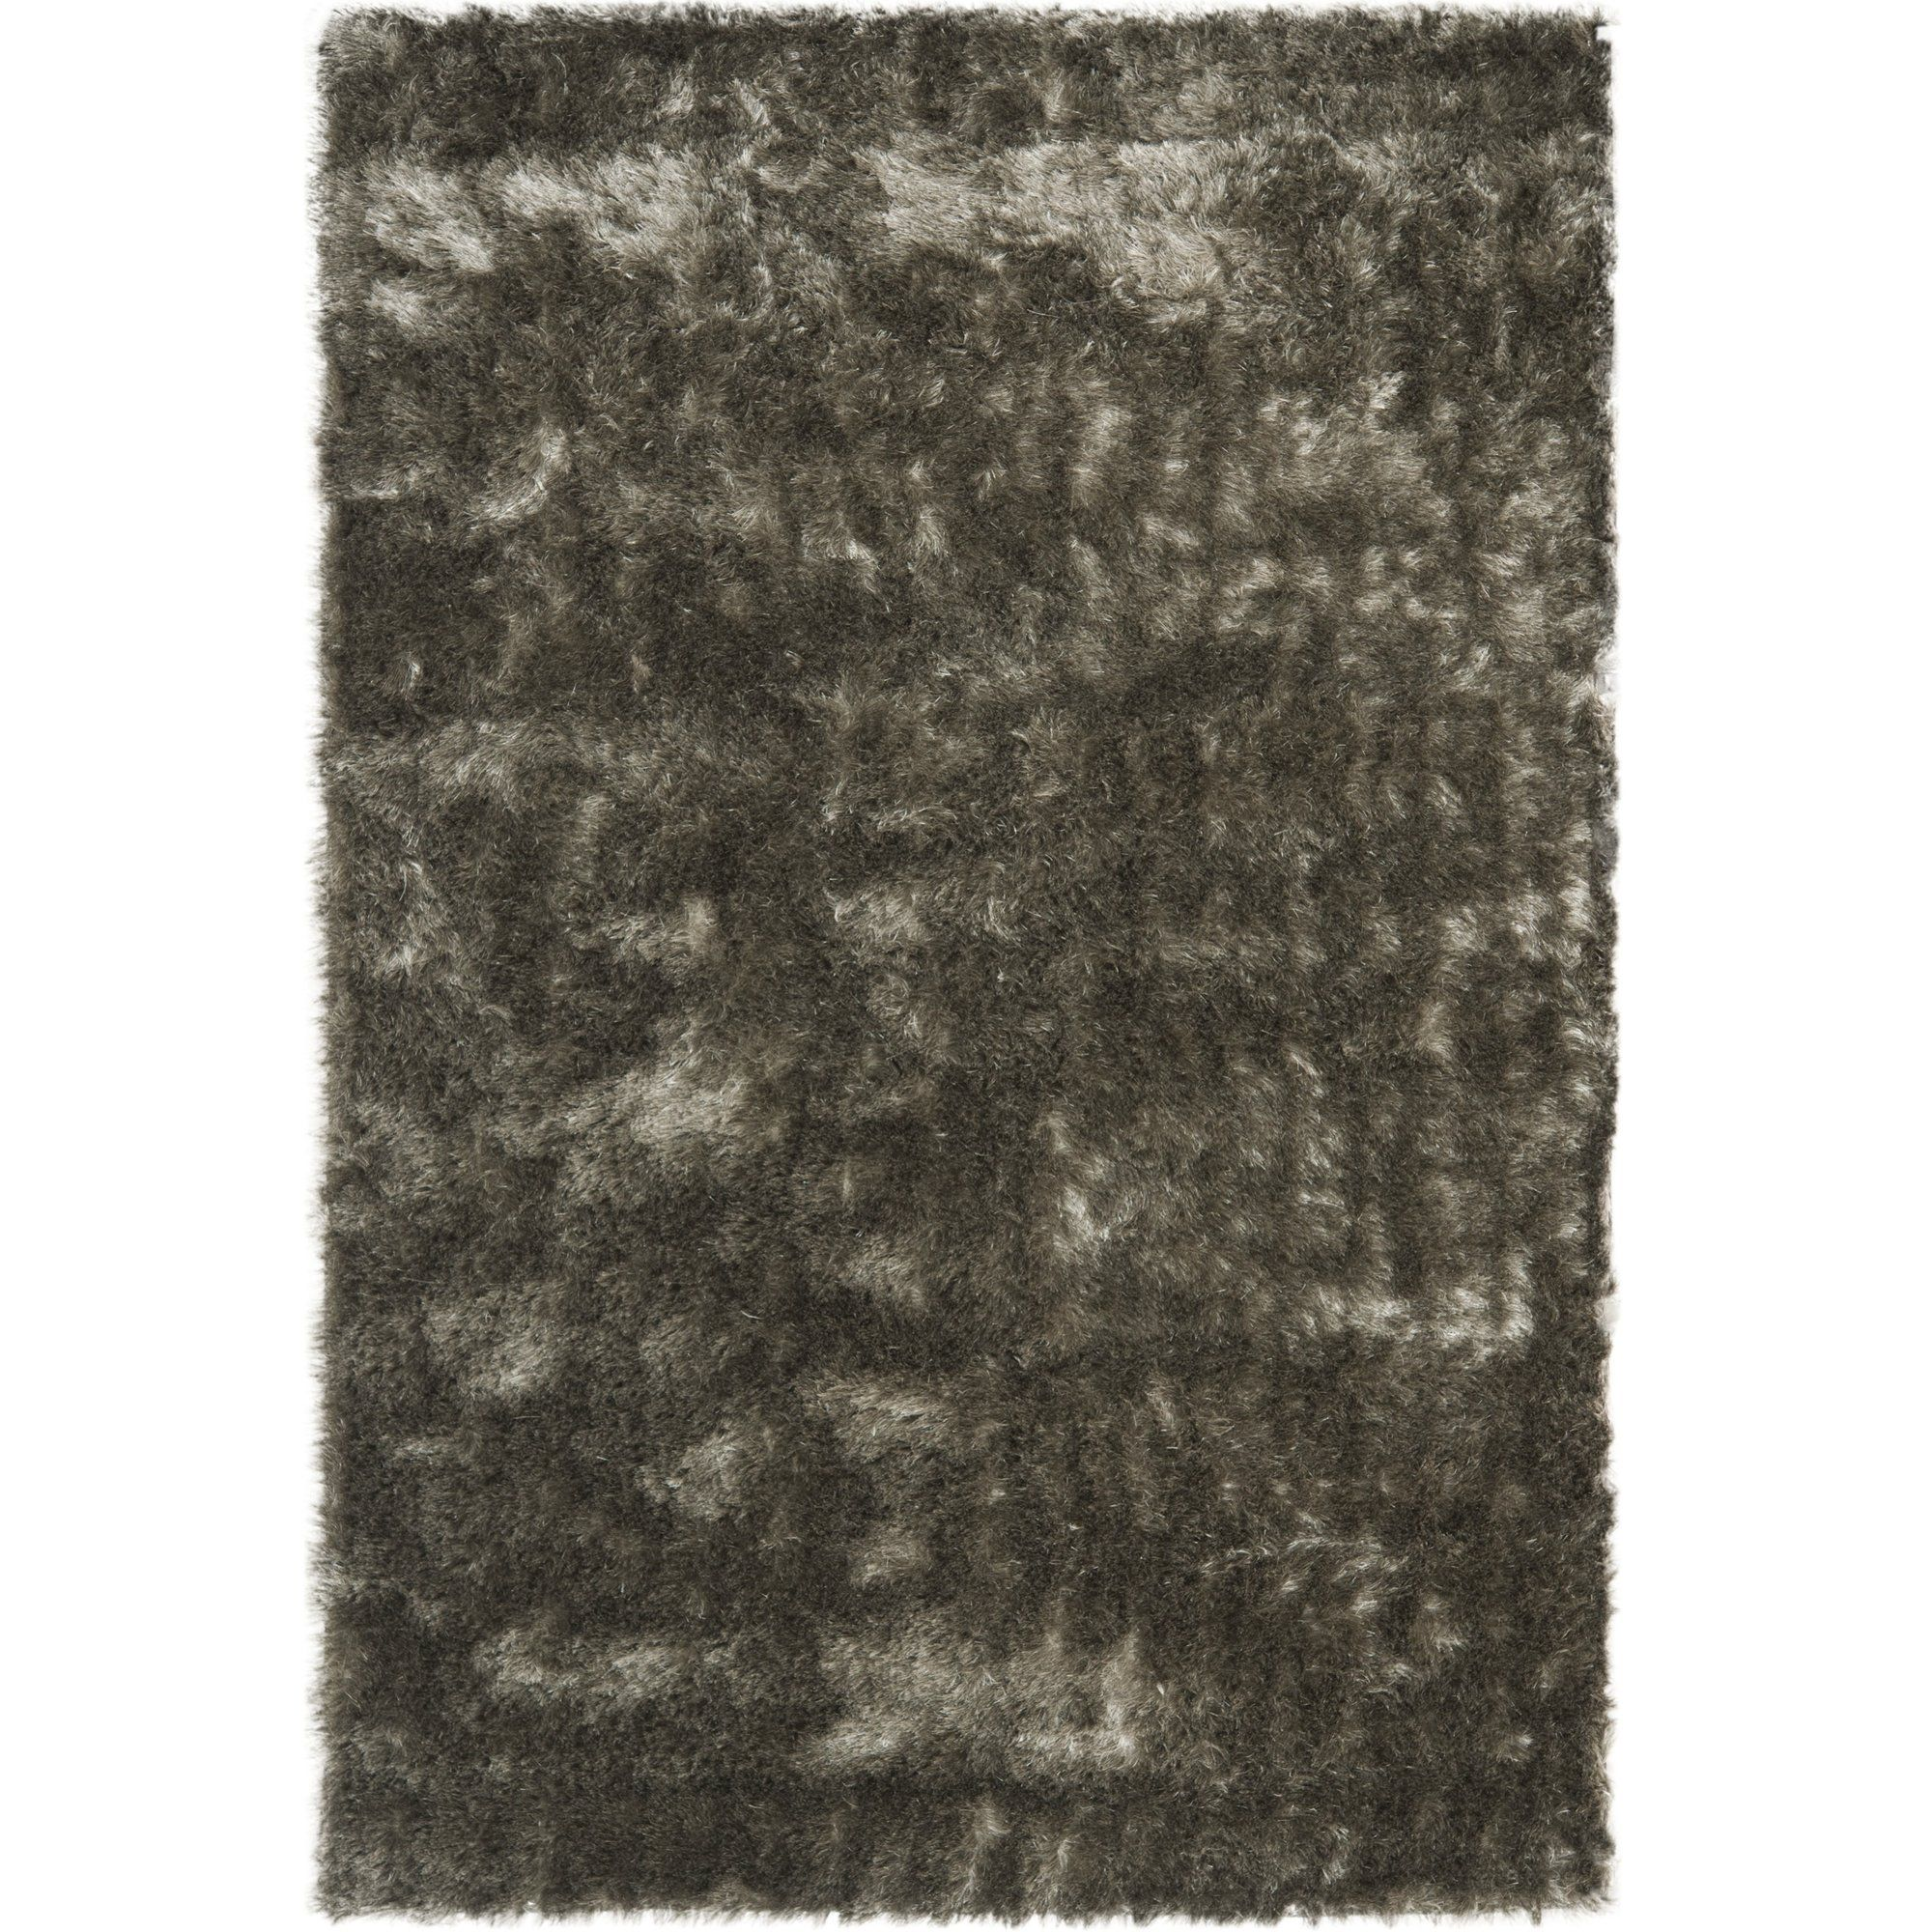 Carlotta Silver Shag Area Rug | Products | Pinterest